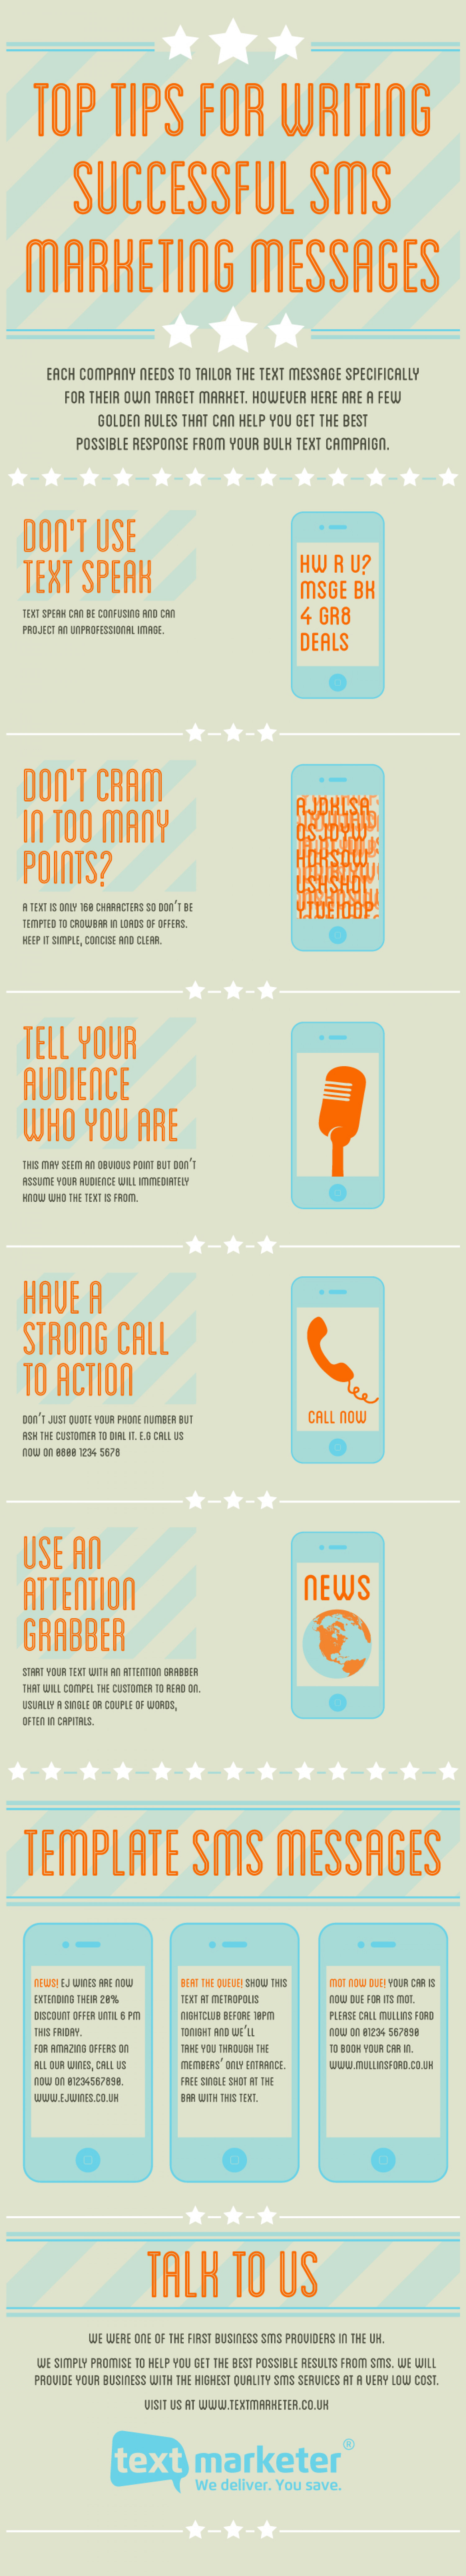 Top tips for writing successful SMS marketing messages Infographic